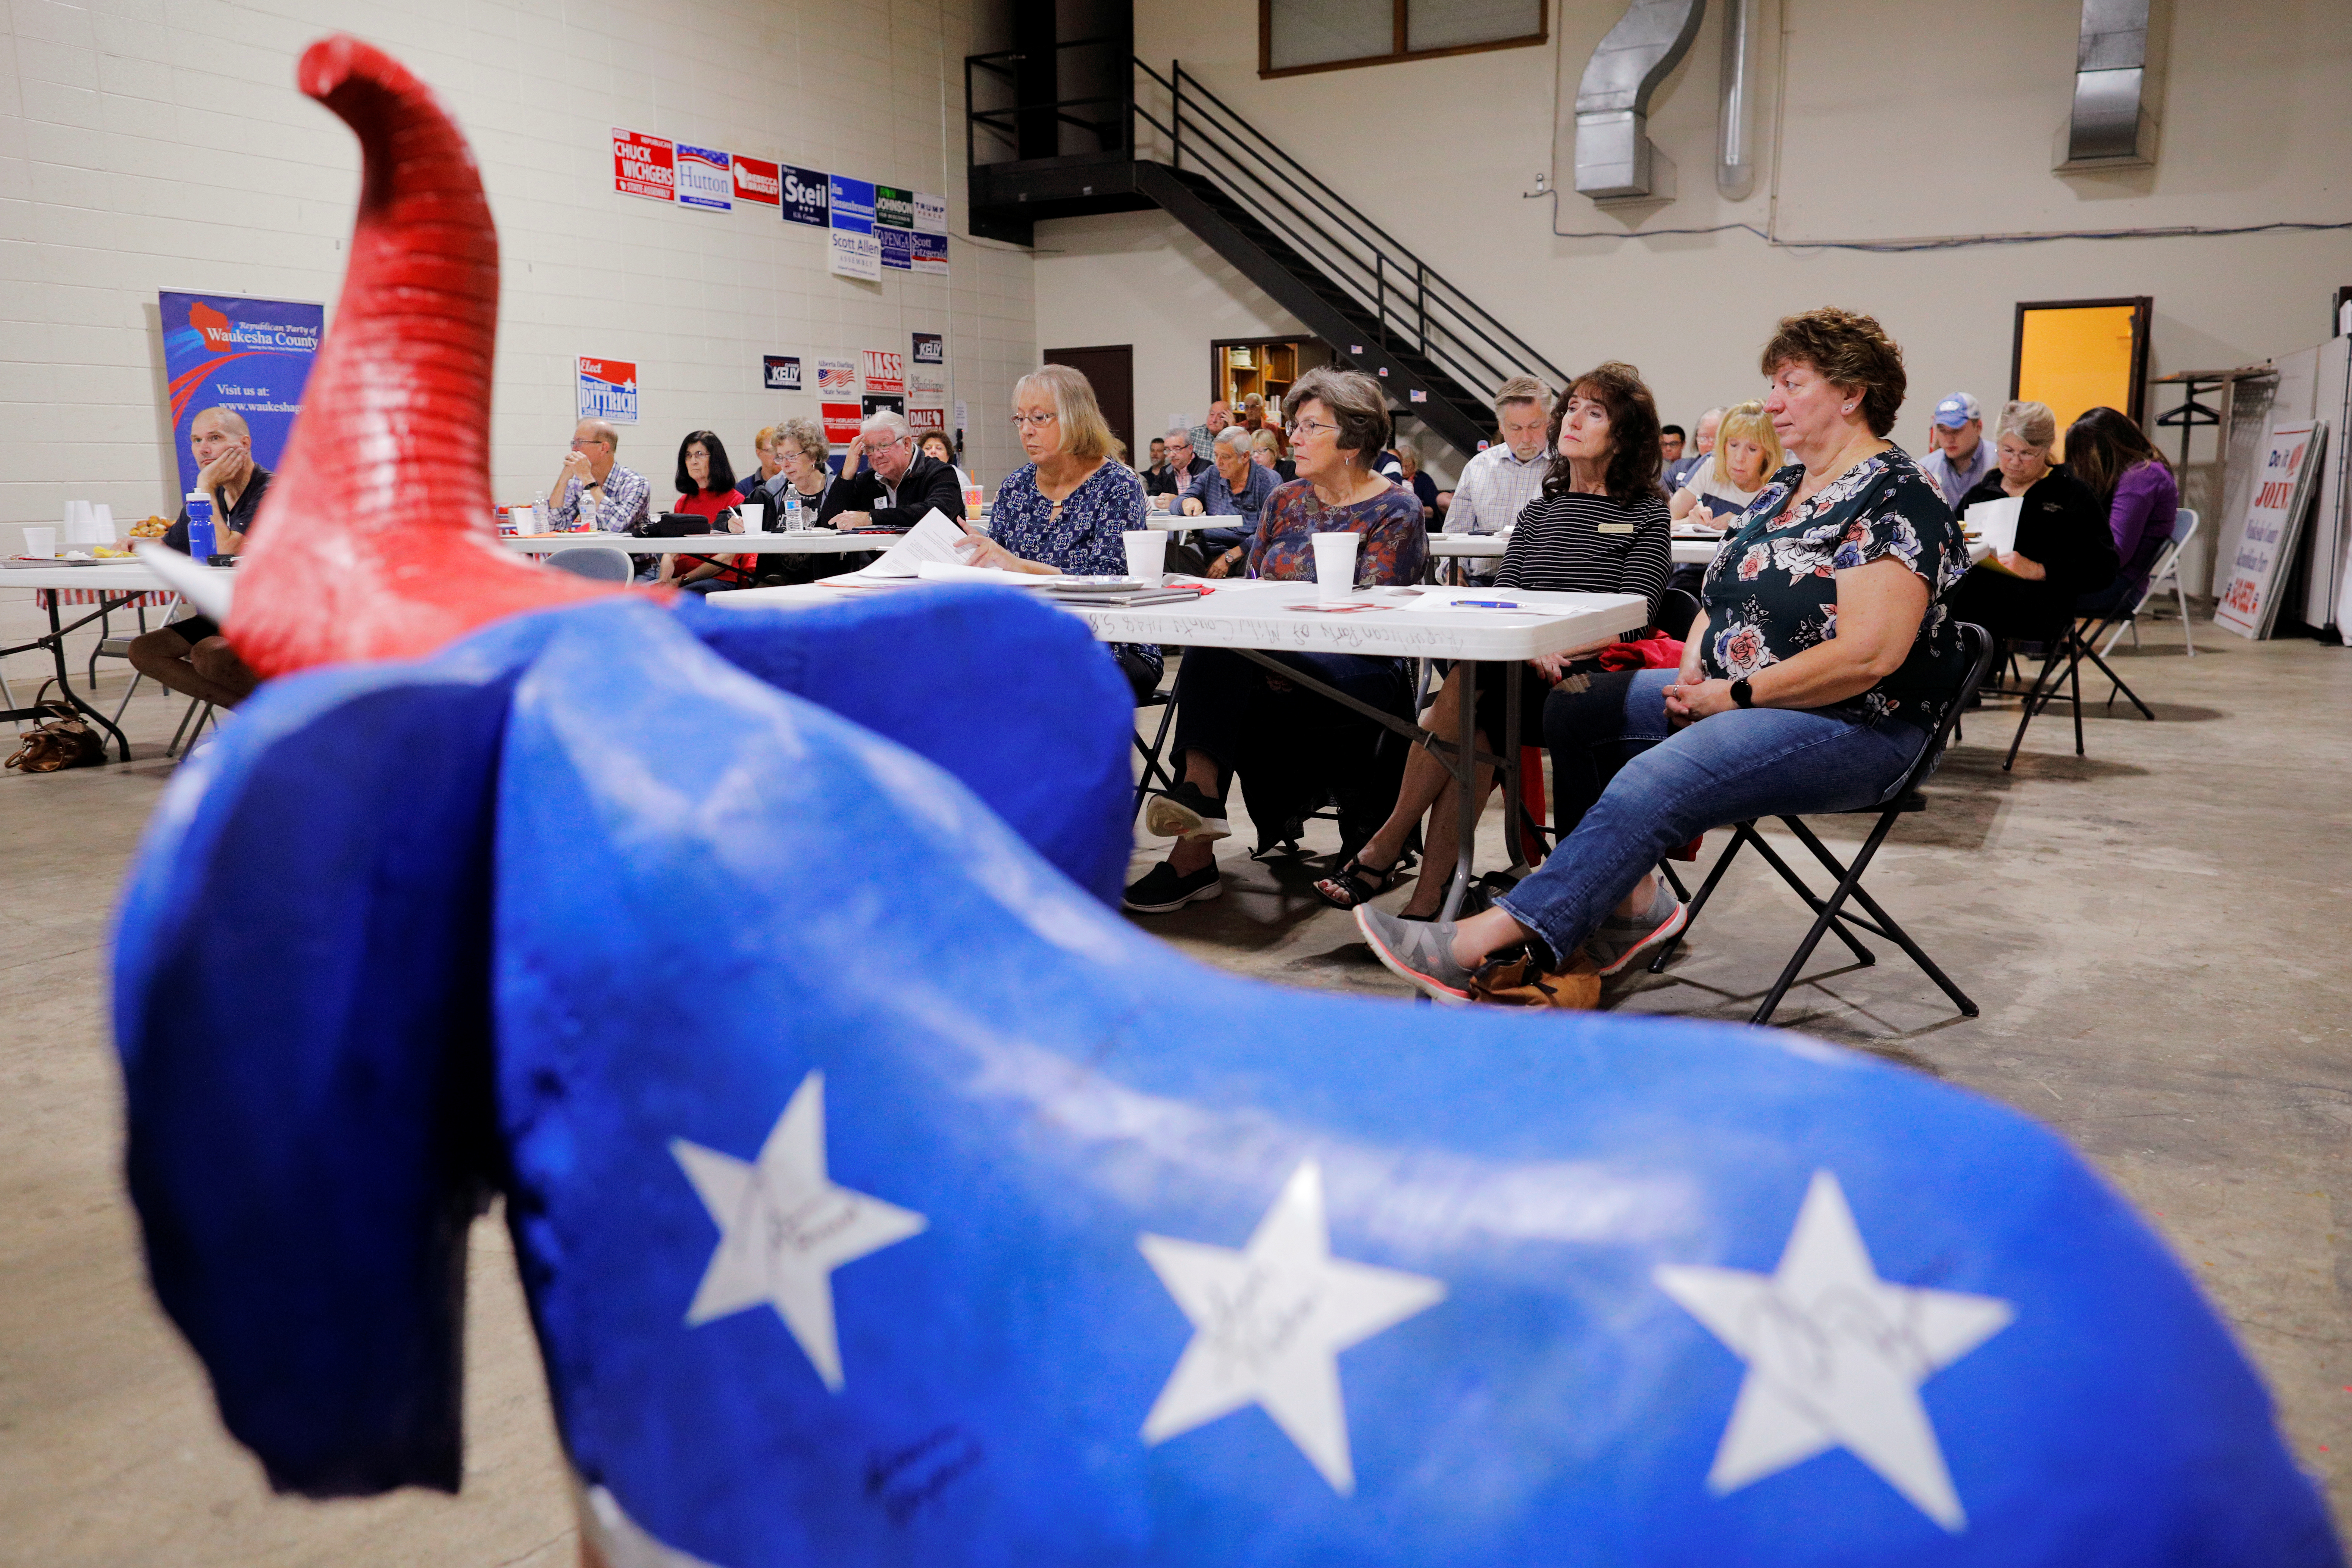 Local Republican Party officials and volunteers gather for a leadership training session in Waukesha, Wisconsin, U.S., September 7, 2019. Picture taken September 7, 2019.